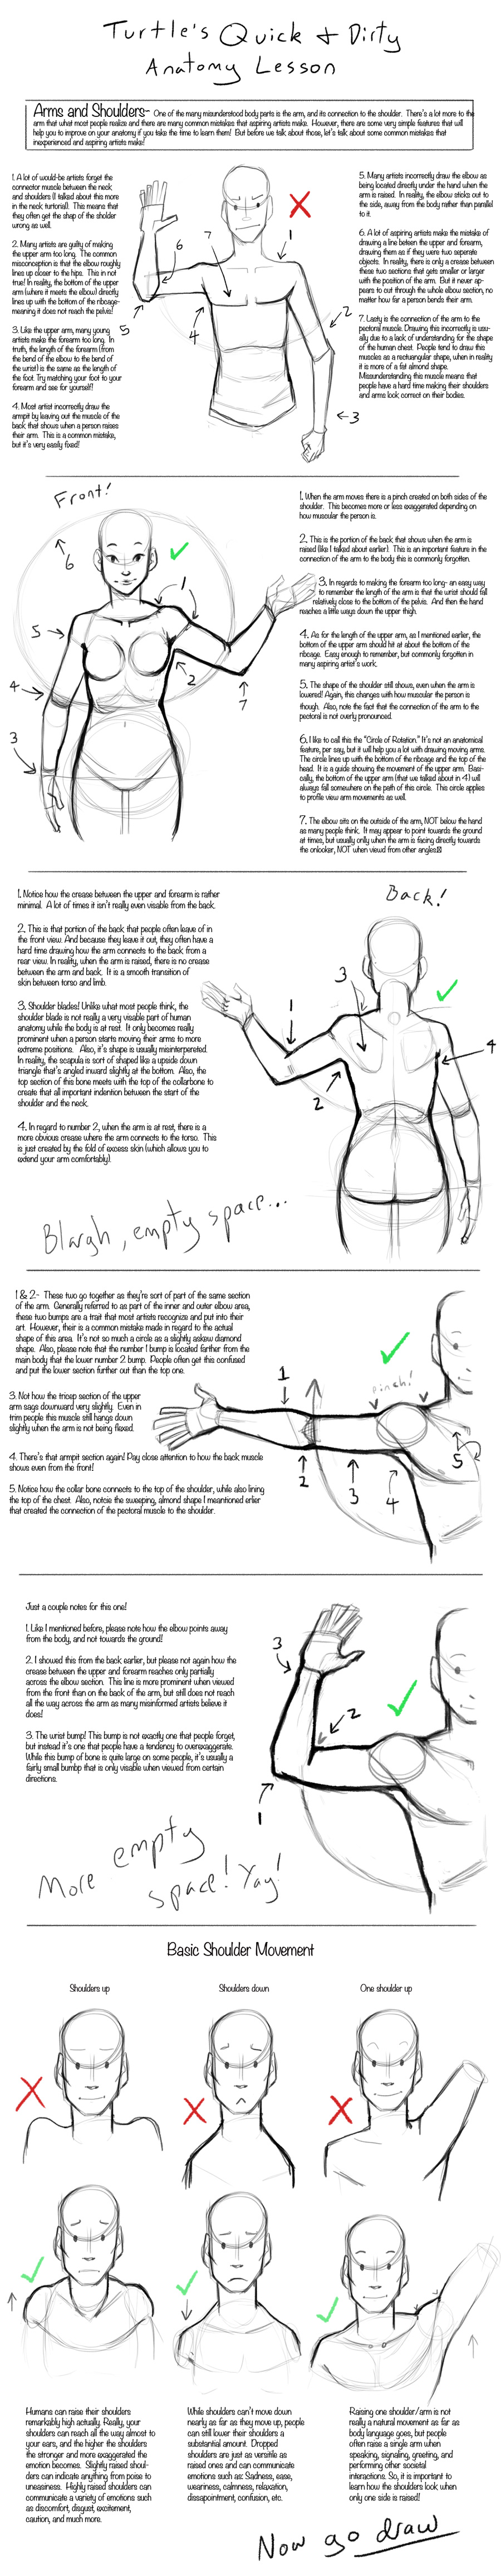 Q+D Anatomy Lessons- Arms and Shoulders by Turtle-Arts